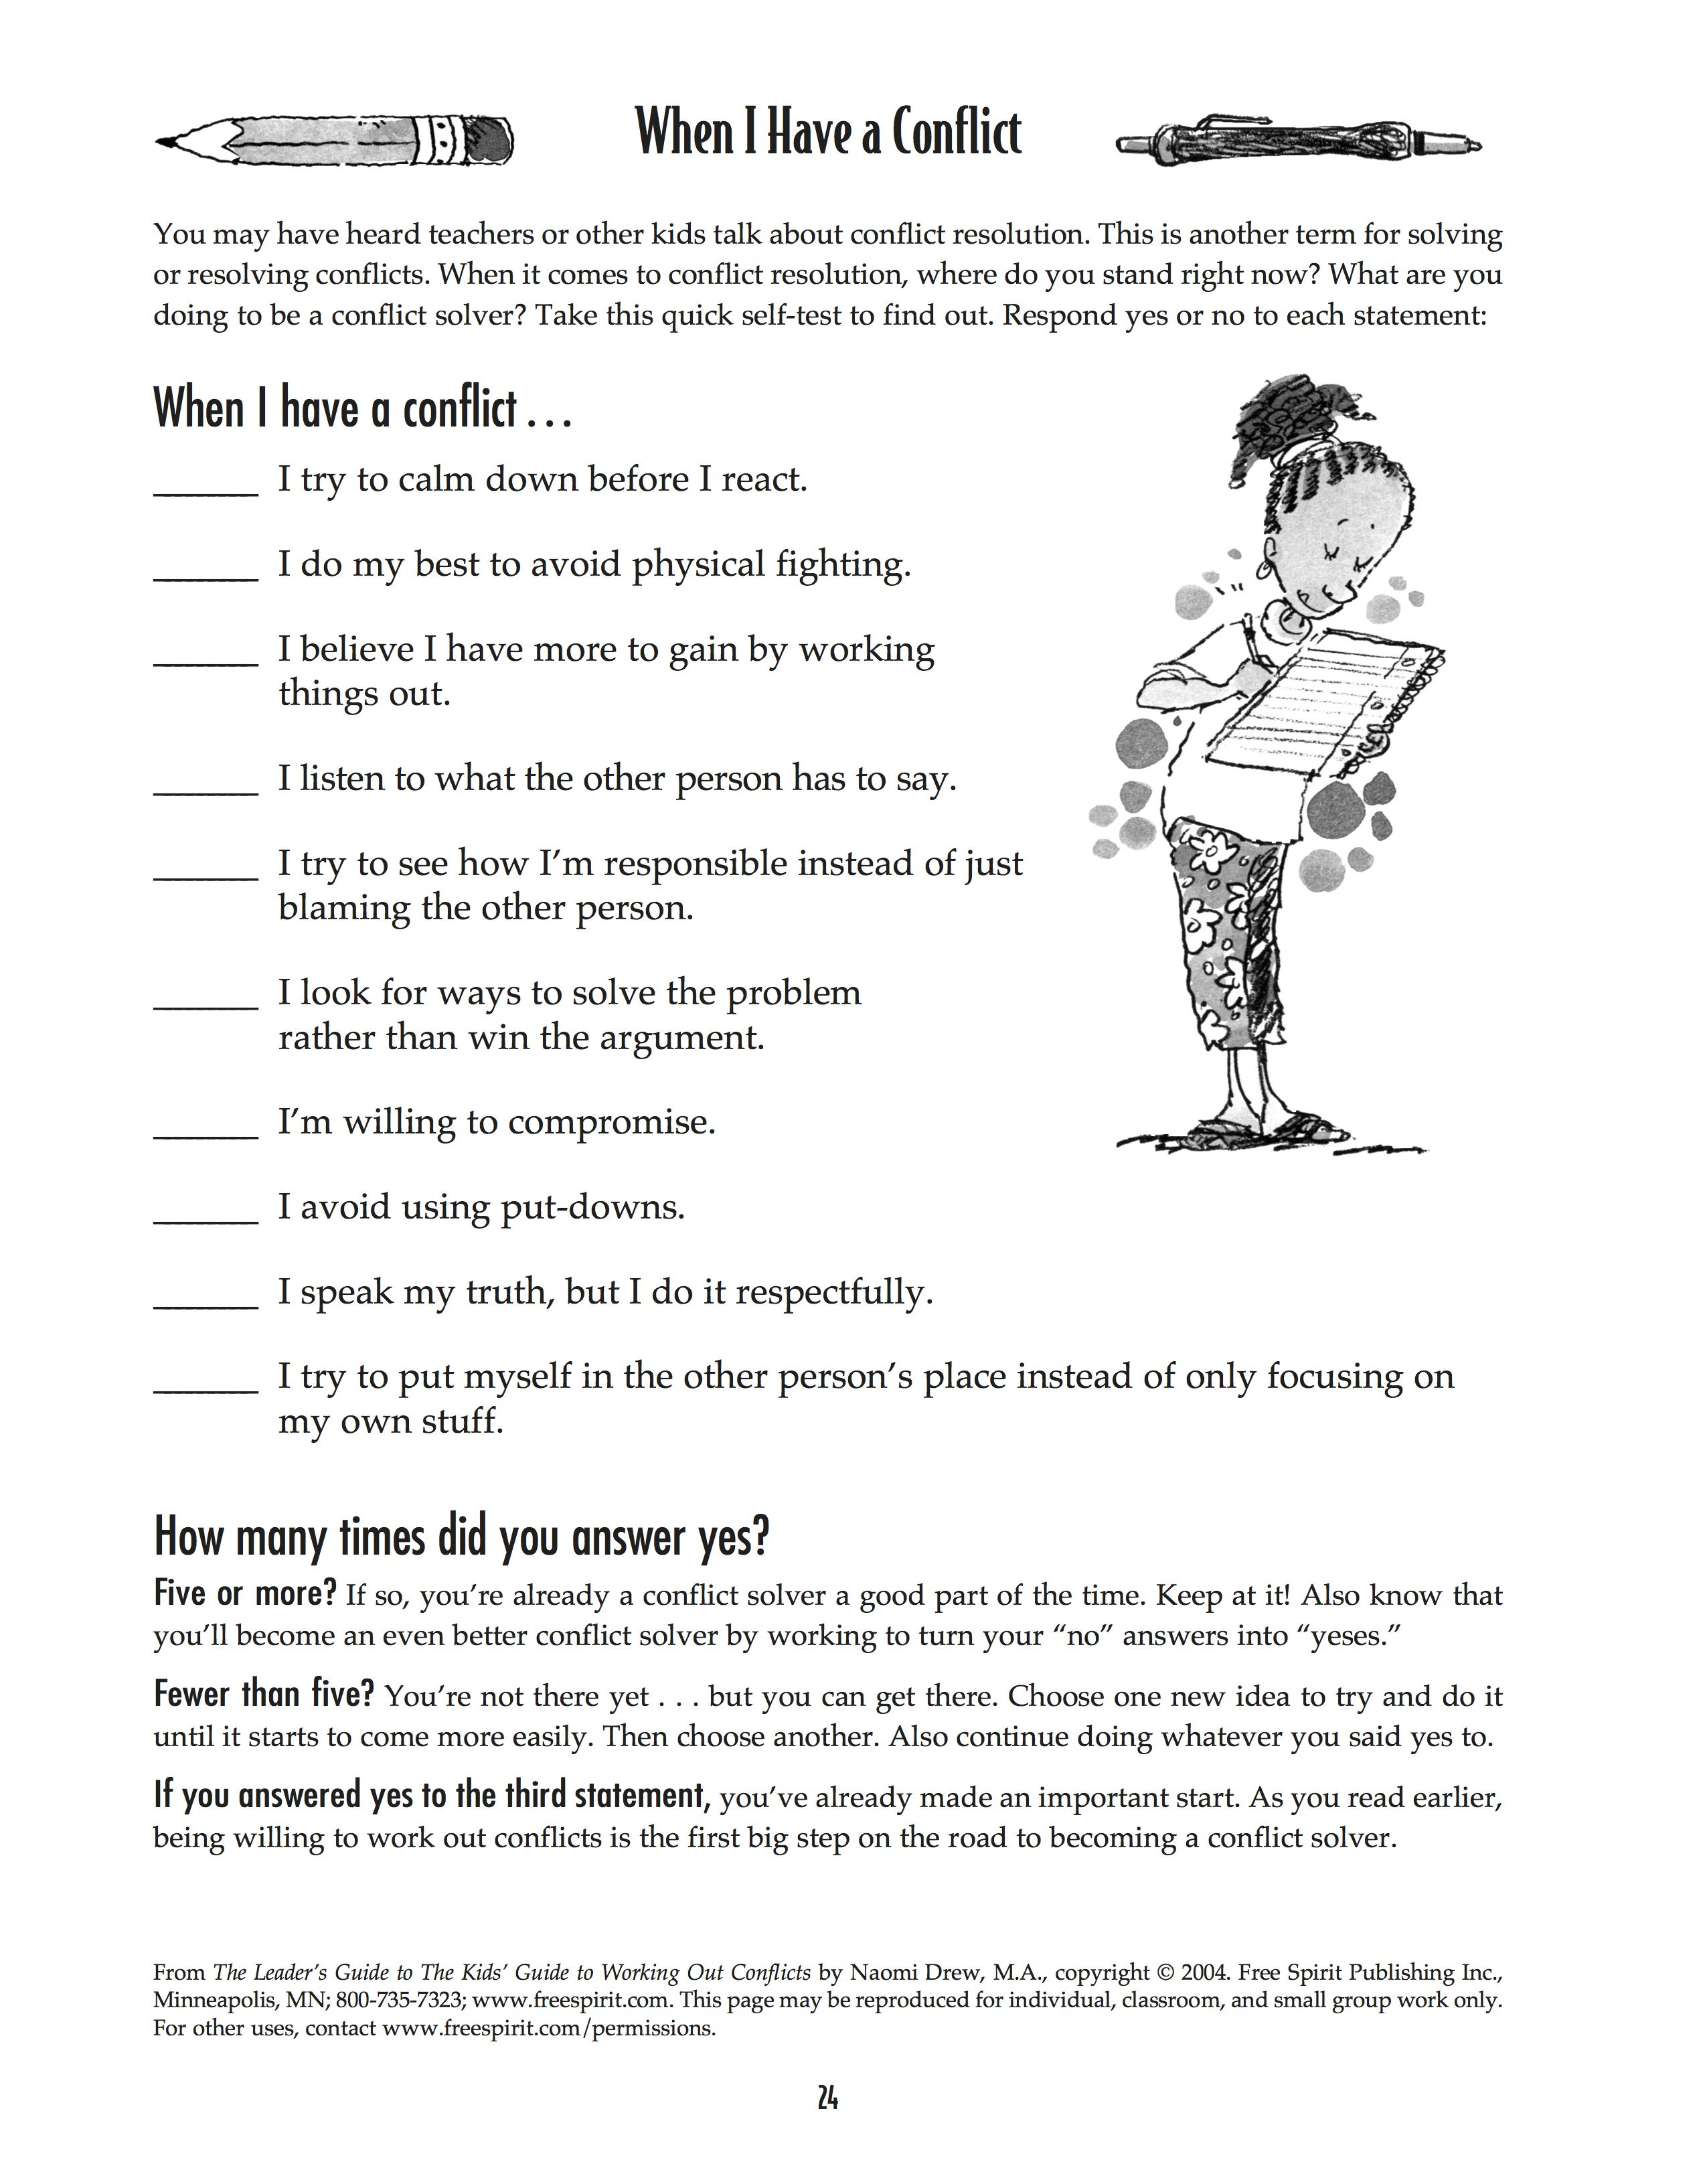 Free Printable Worksheet: When I Have A Conflict. A Quick Self-Test | Free Printable Social Stories Worksheets